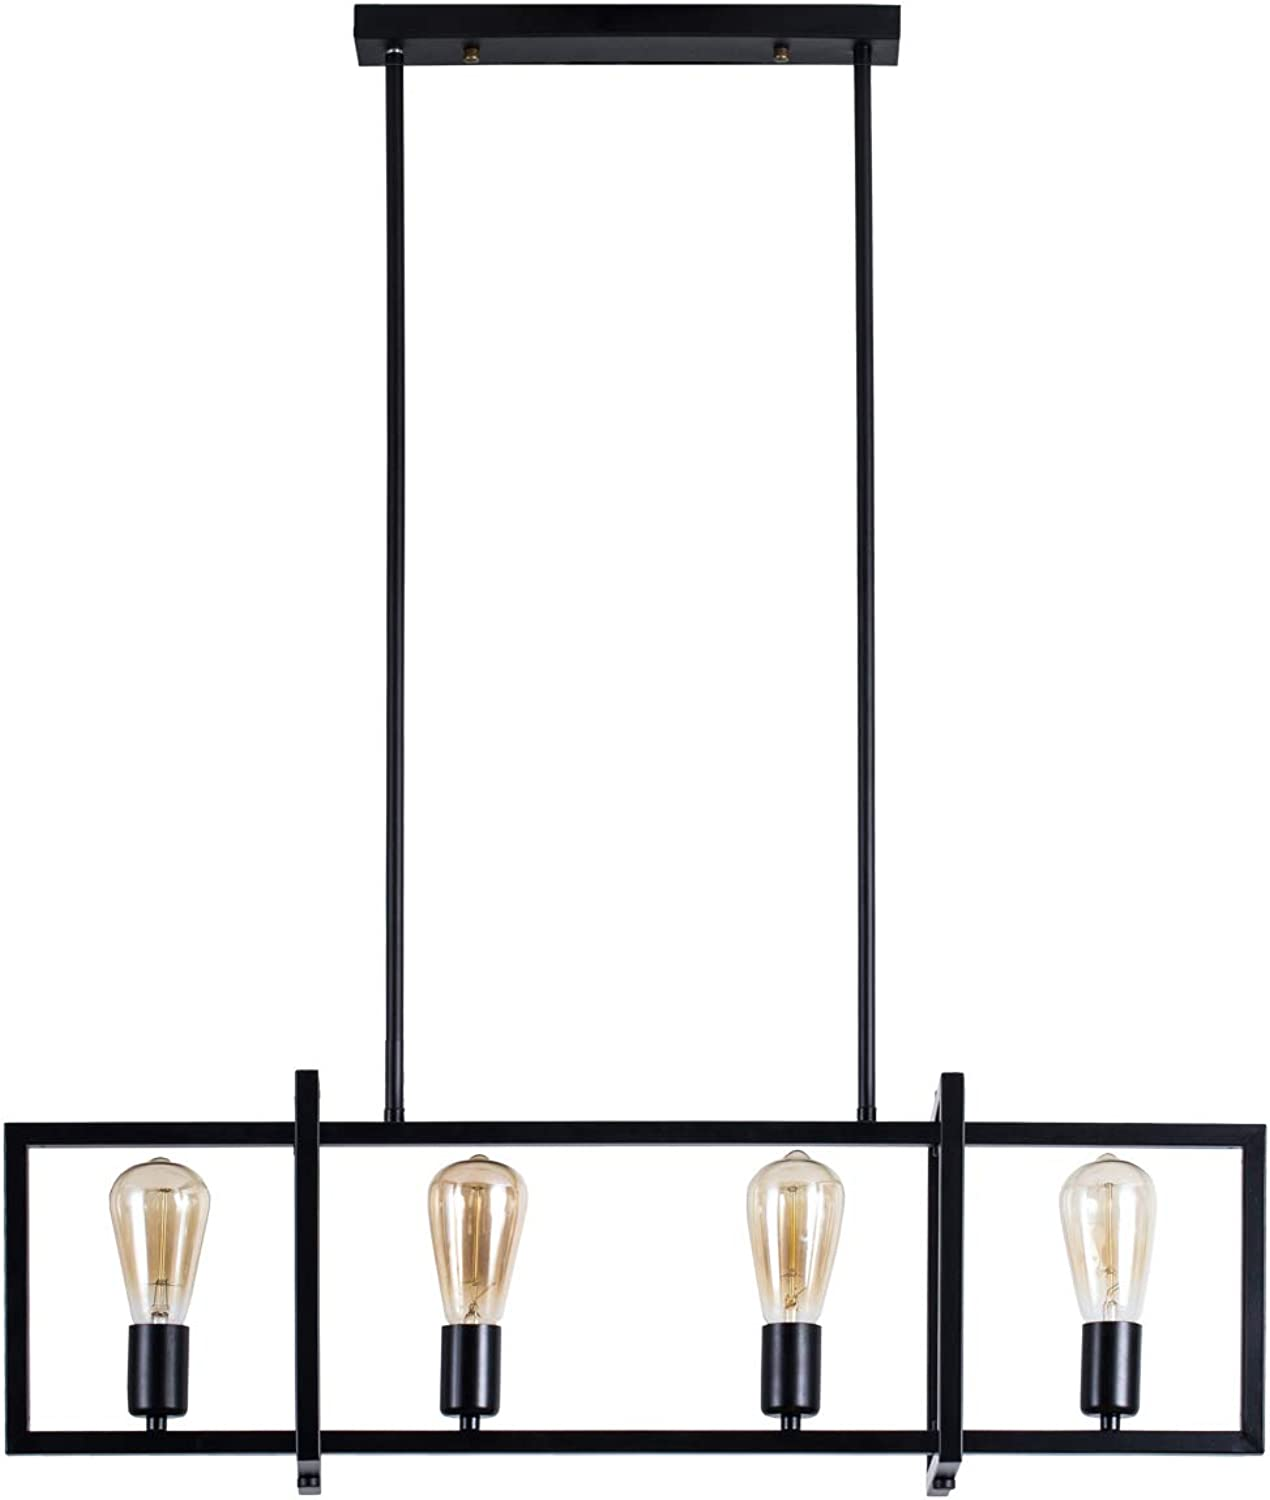 4-Light Kitchen Island Pendant with Matte Black Plated Finish, Geometric Modern Industrial Chandelier for Kitchen Island, Restaurants, Dining Room, Hotels, Foyer, Shops